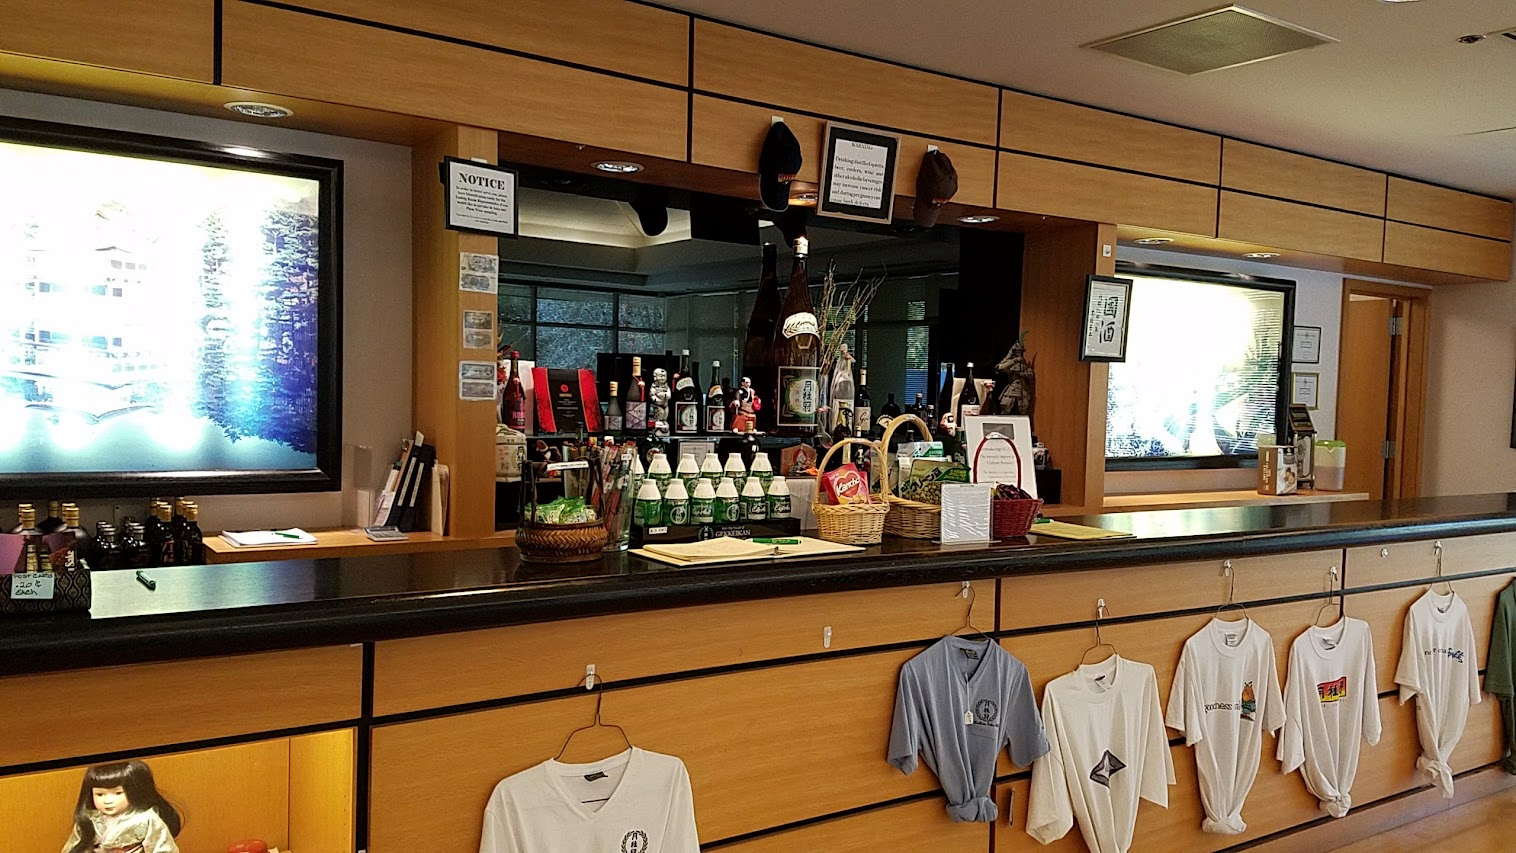 After the free self tour of the sake brewing process at Gekkeikan Sake in Folsom return to the tasting room where you can see choose 5 of their sake portfolio to sample and look at other Japanese decor.